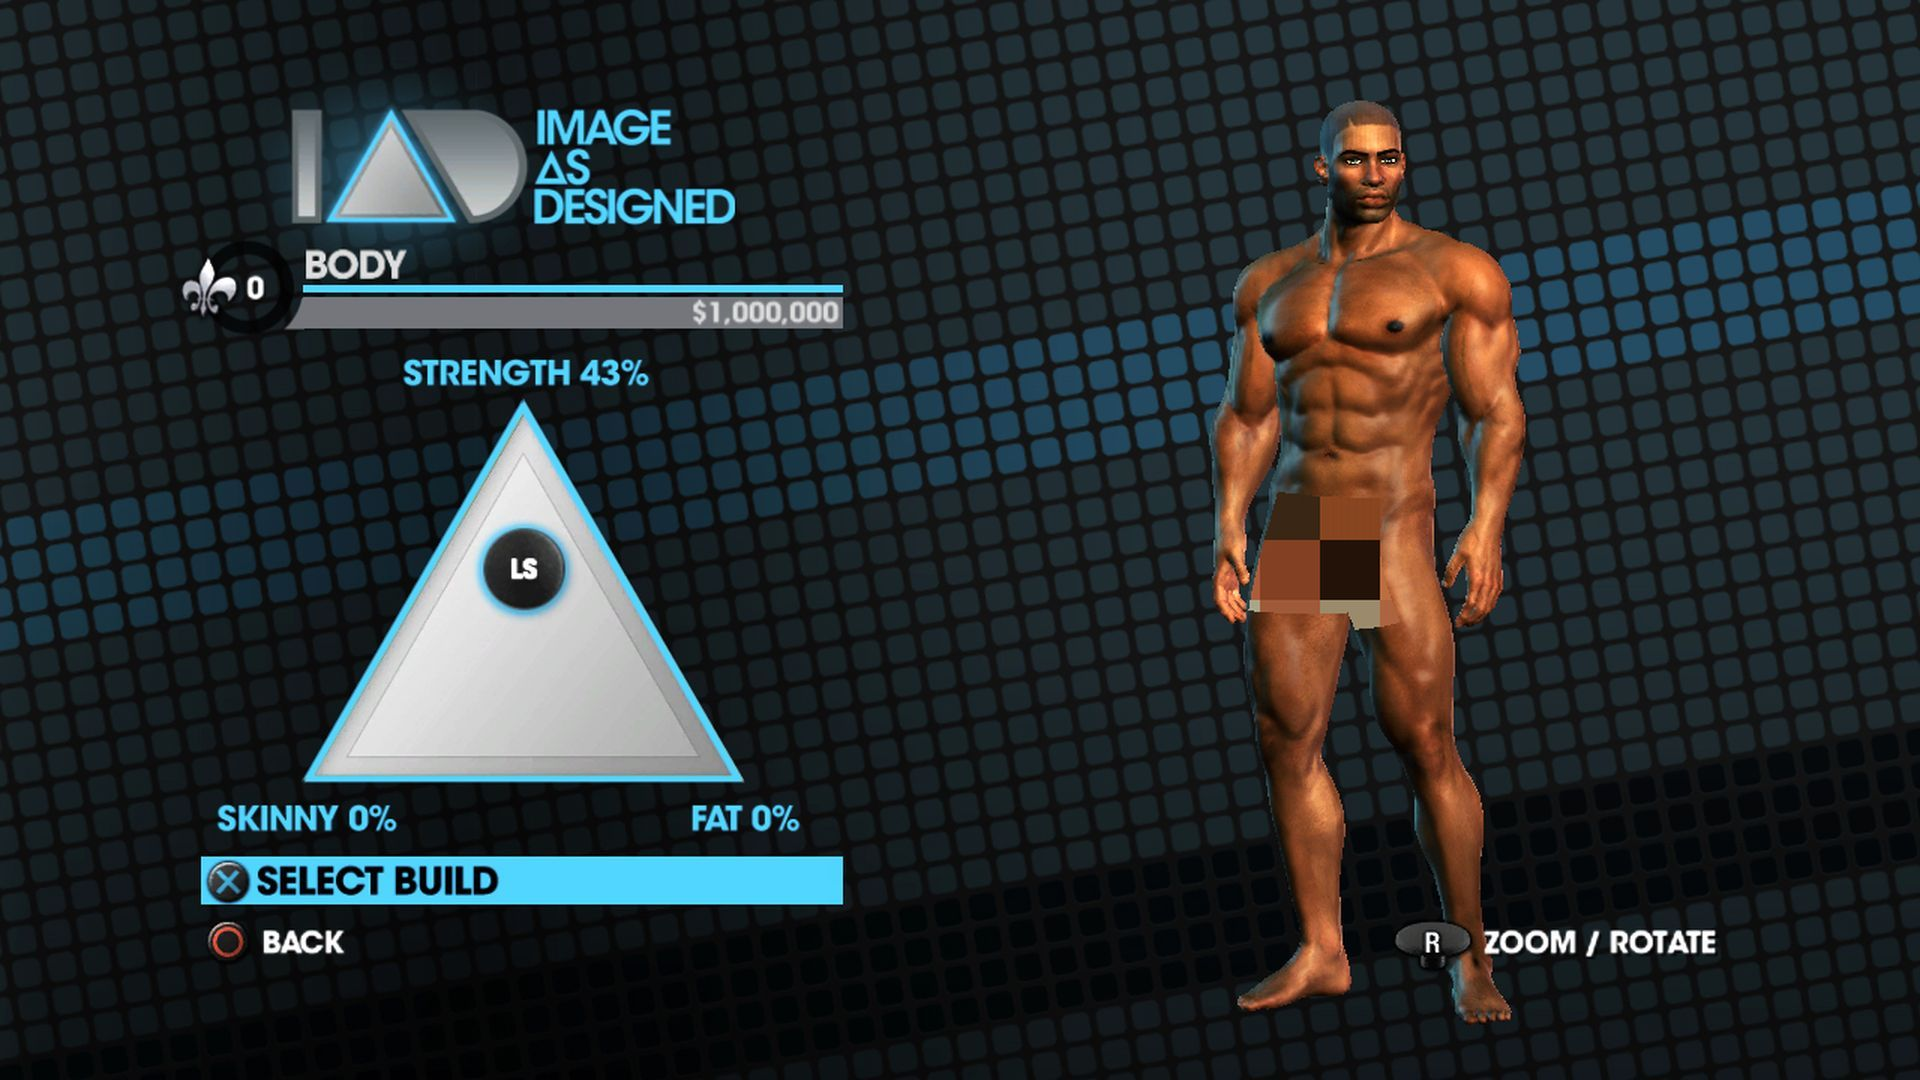 Image As Designed - Build triangle promo for Saints Row The Third